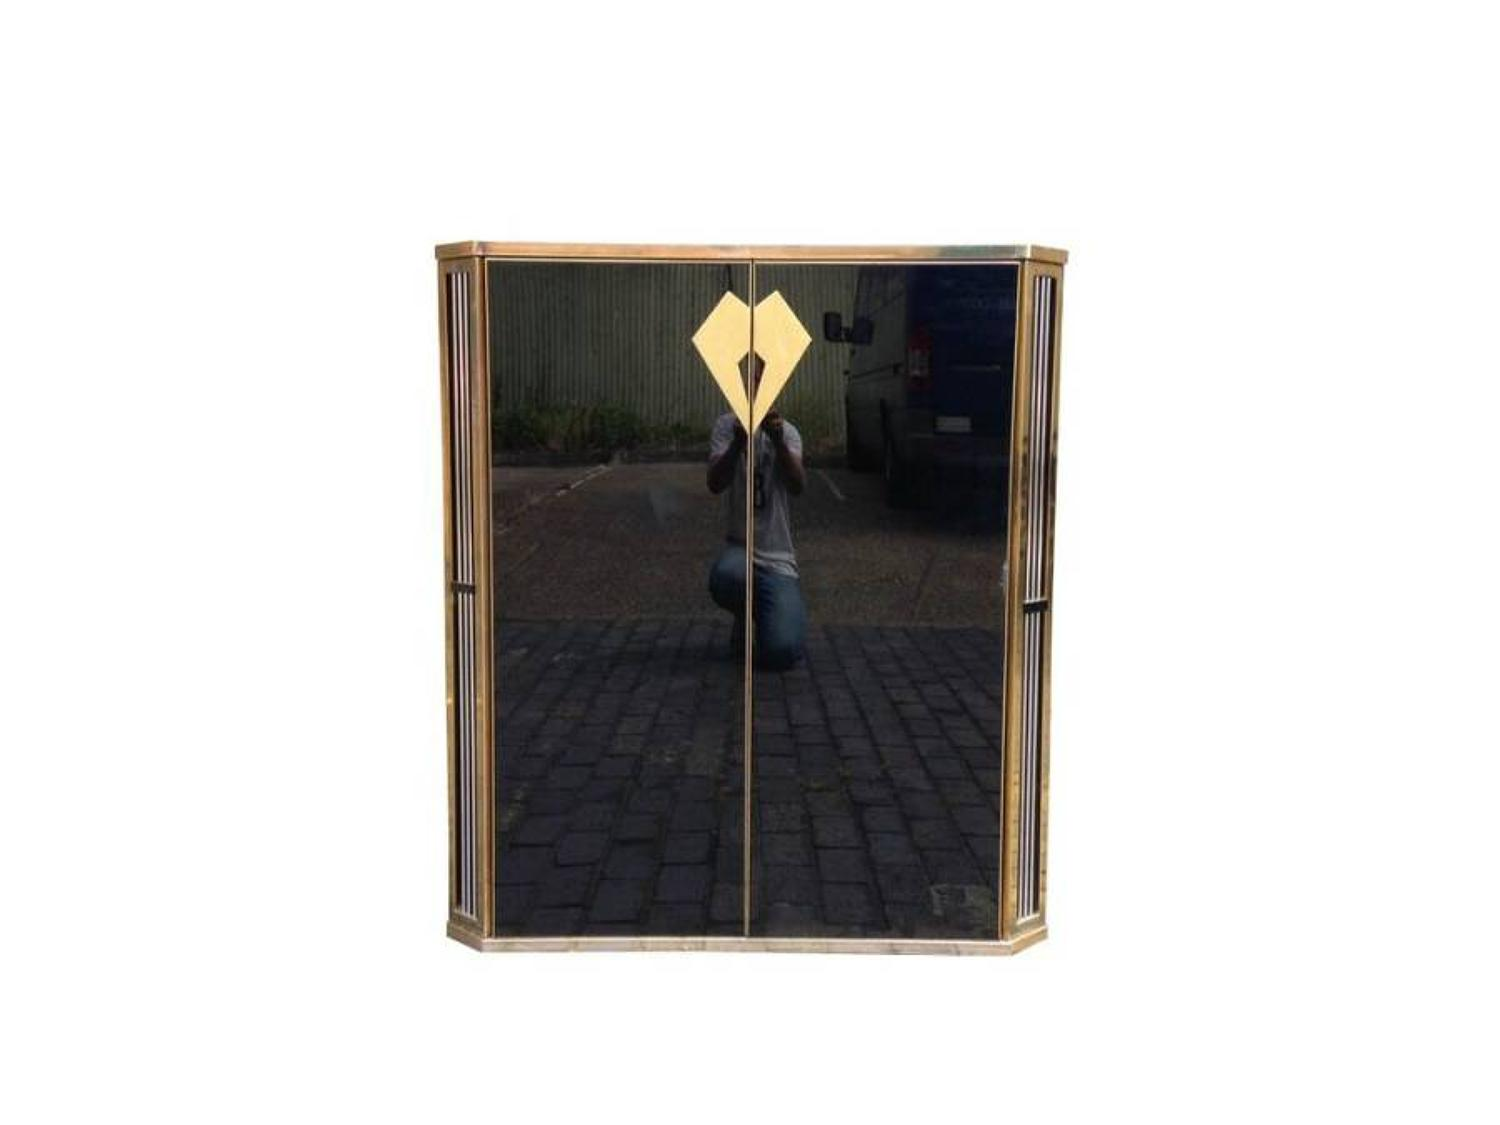 Black glass and brass bar or cabinet